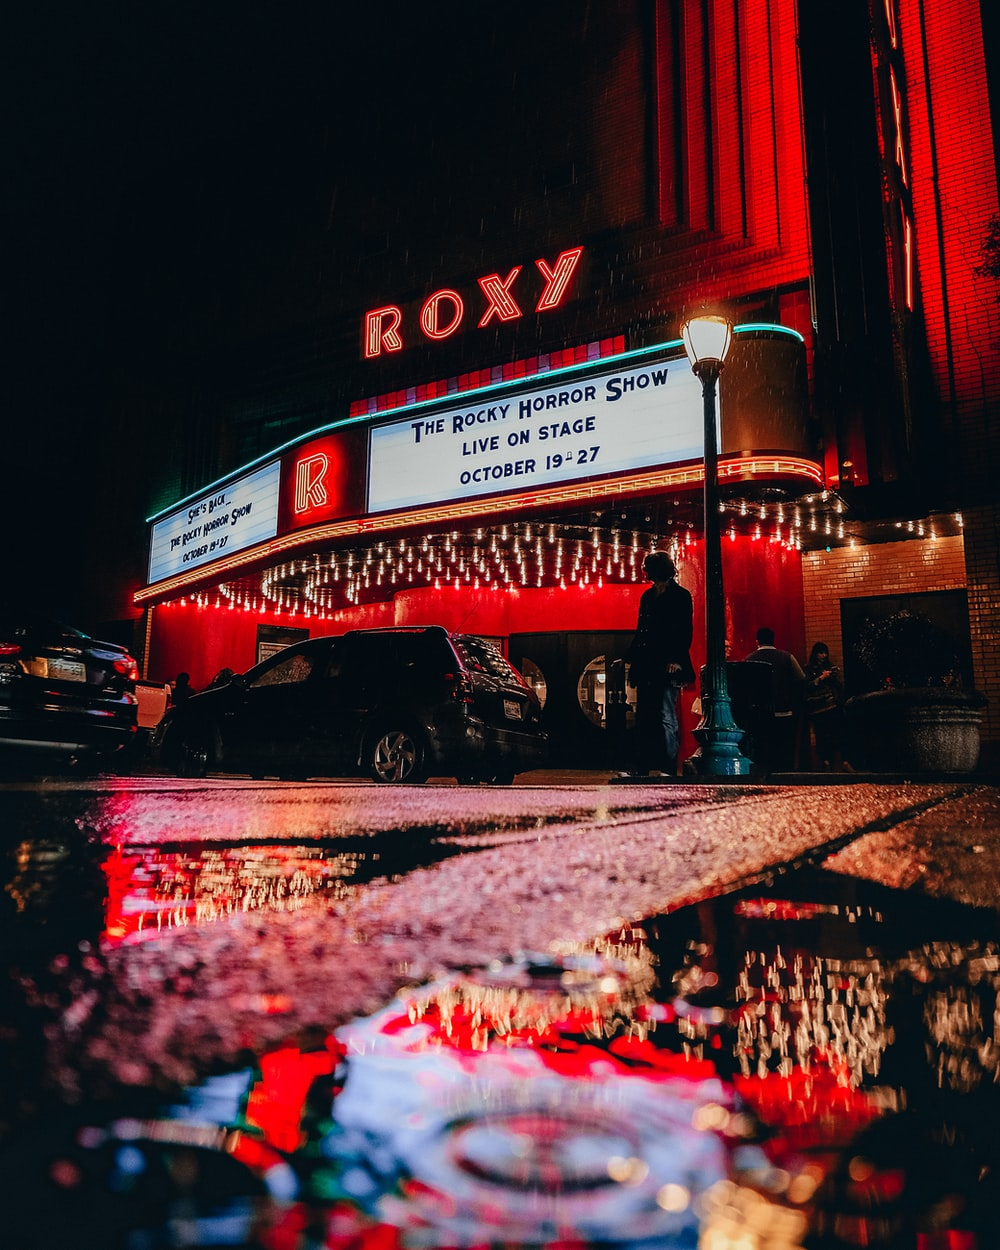 Roxy theater during rainy day